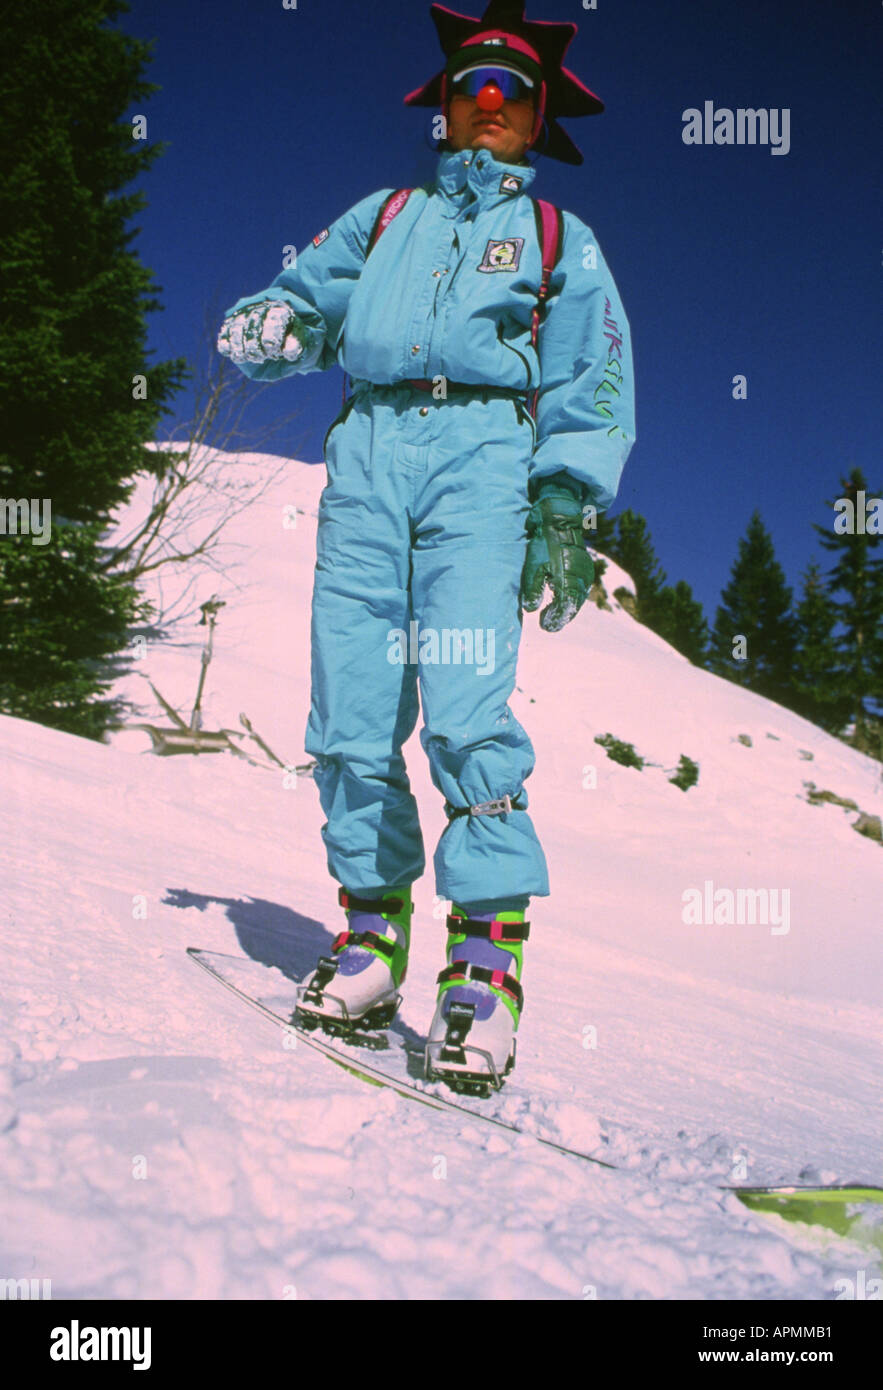 SNOWBOARDING IN THE 80's - Stock Image